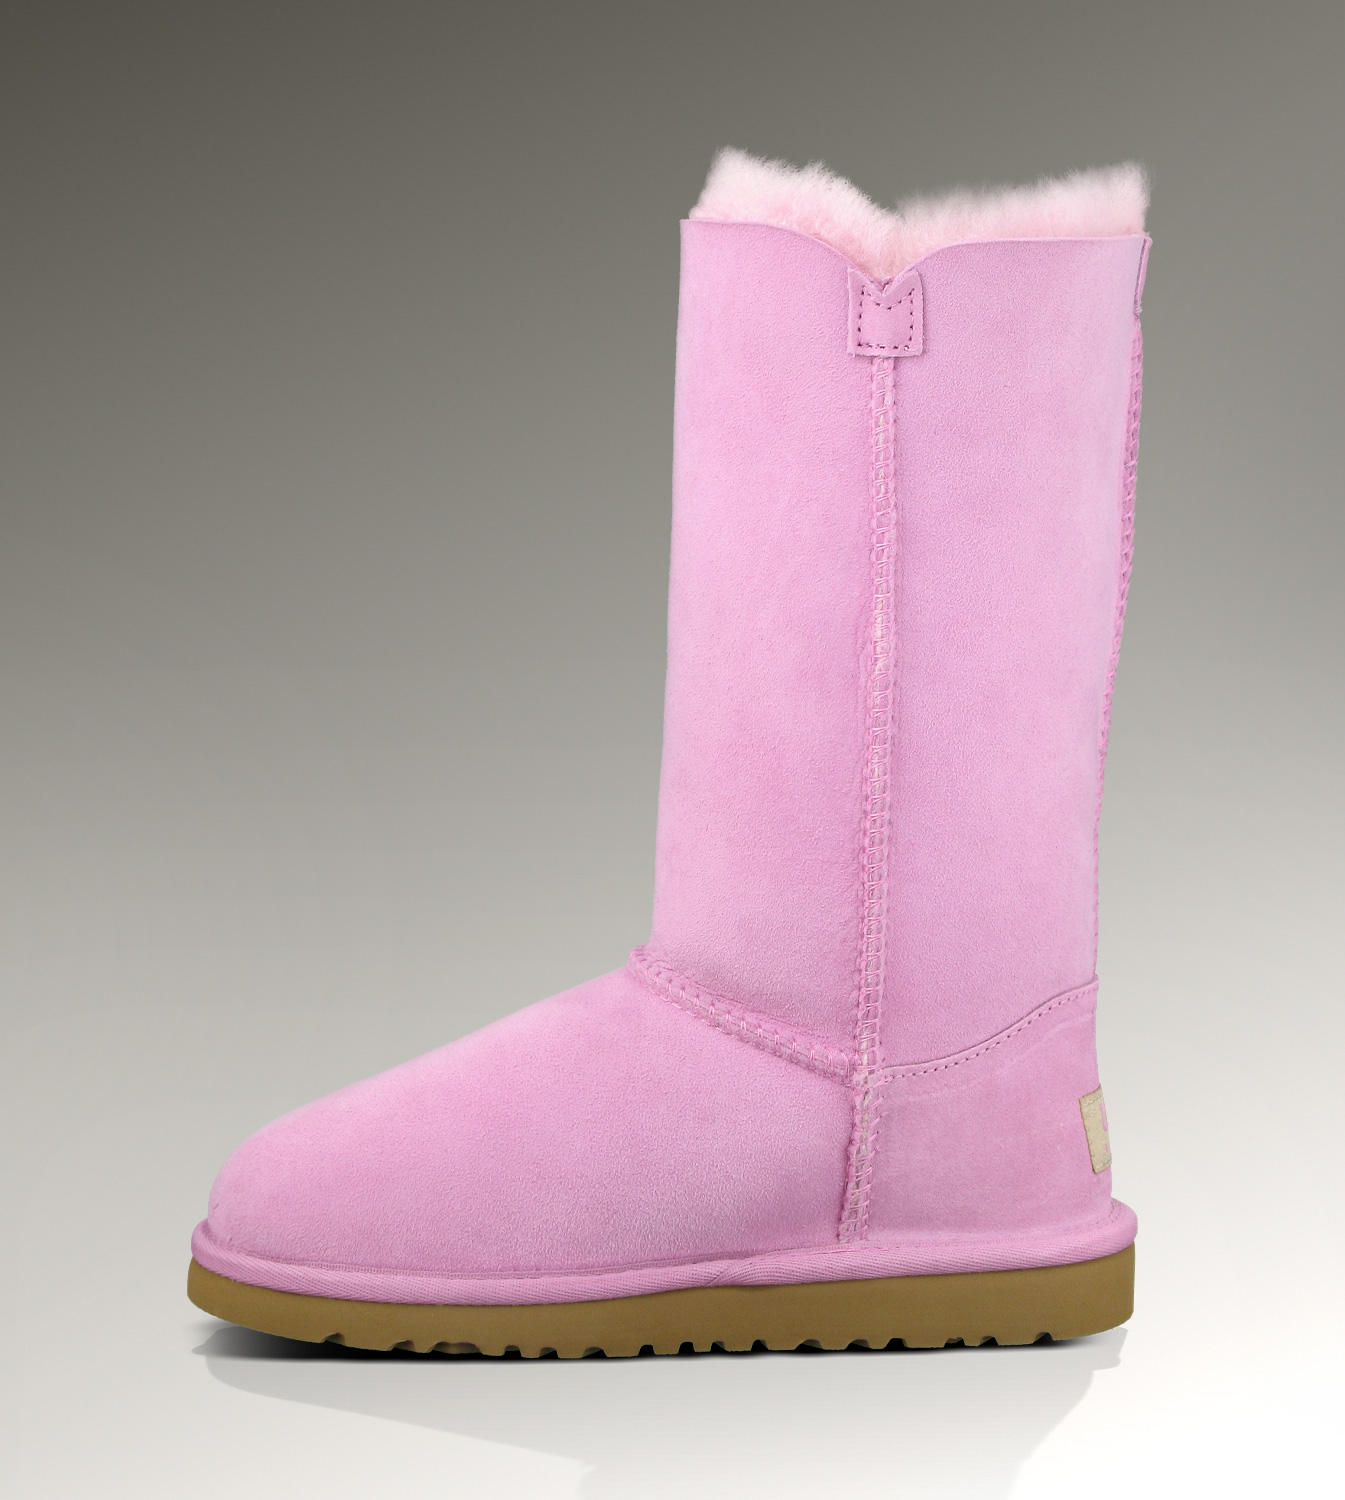 UGG Bailey Button Triplet 1962 Pink Boots